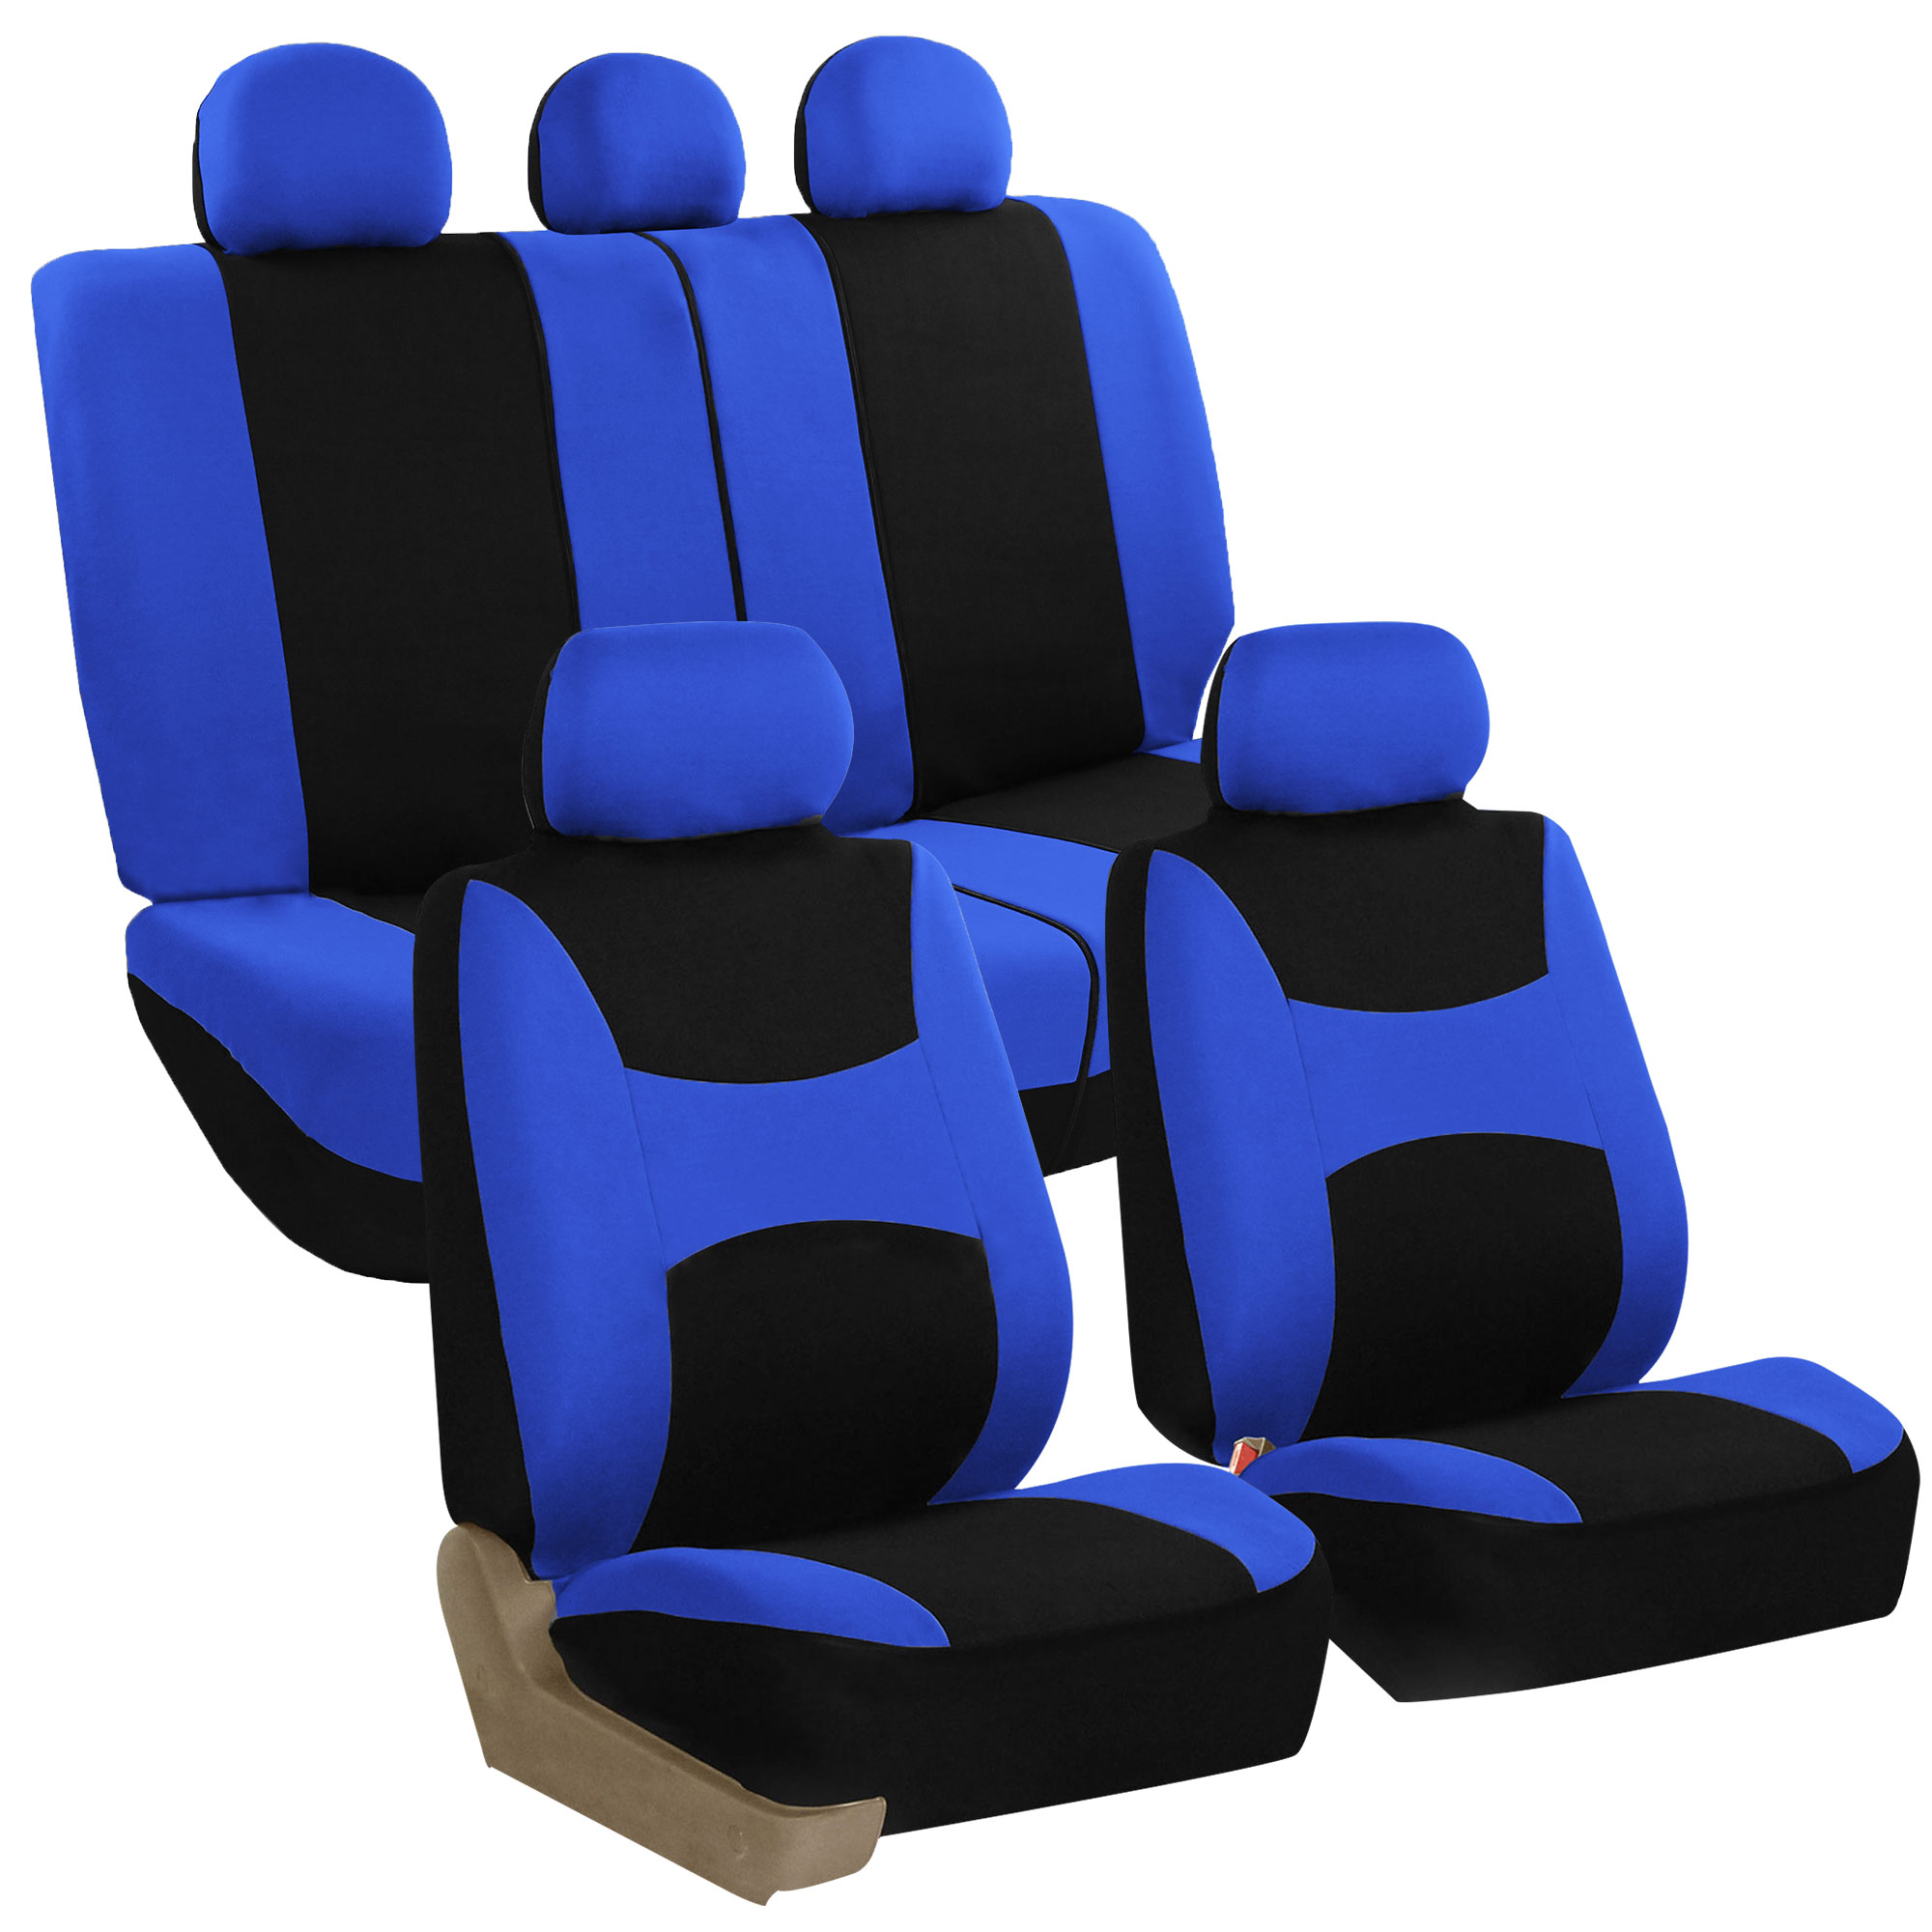 Car Seat Cover For Cars Full Set BLUE With 5 Headrest Covers